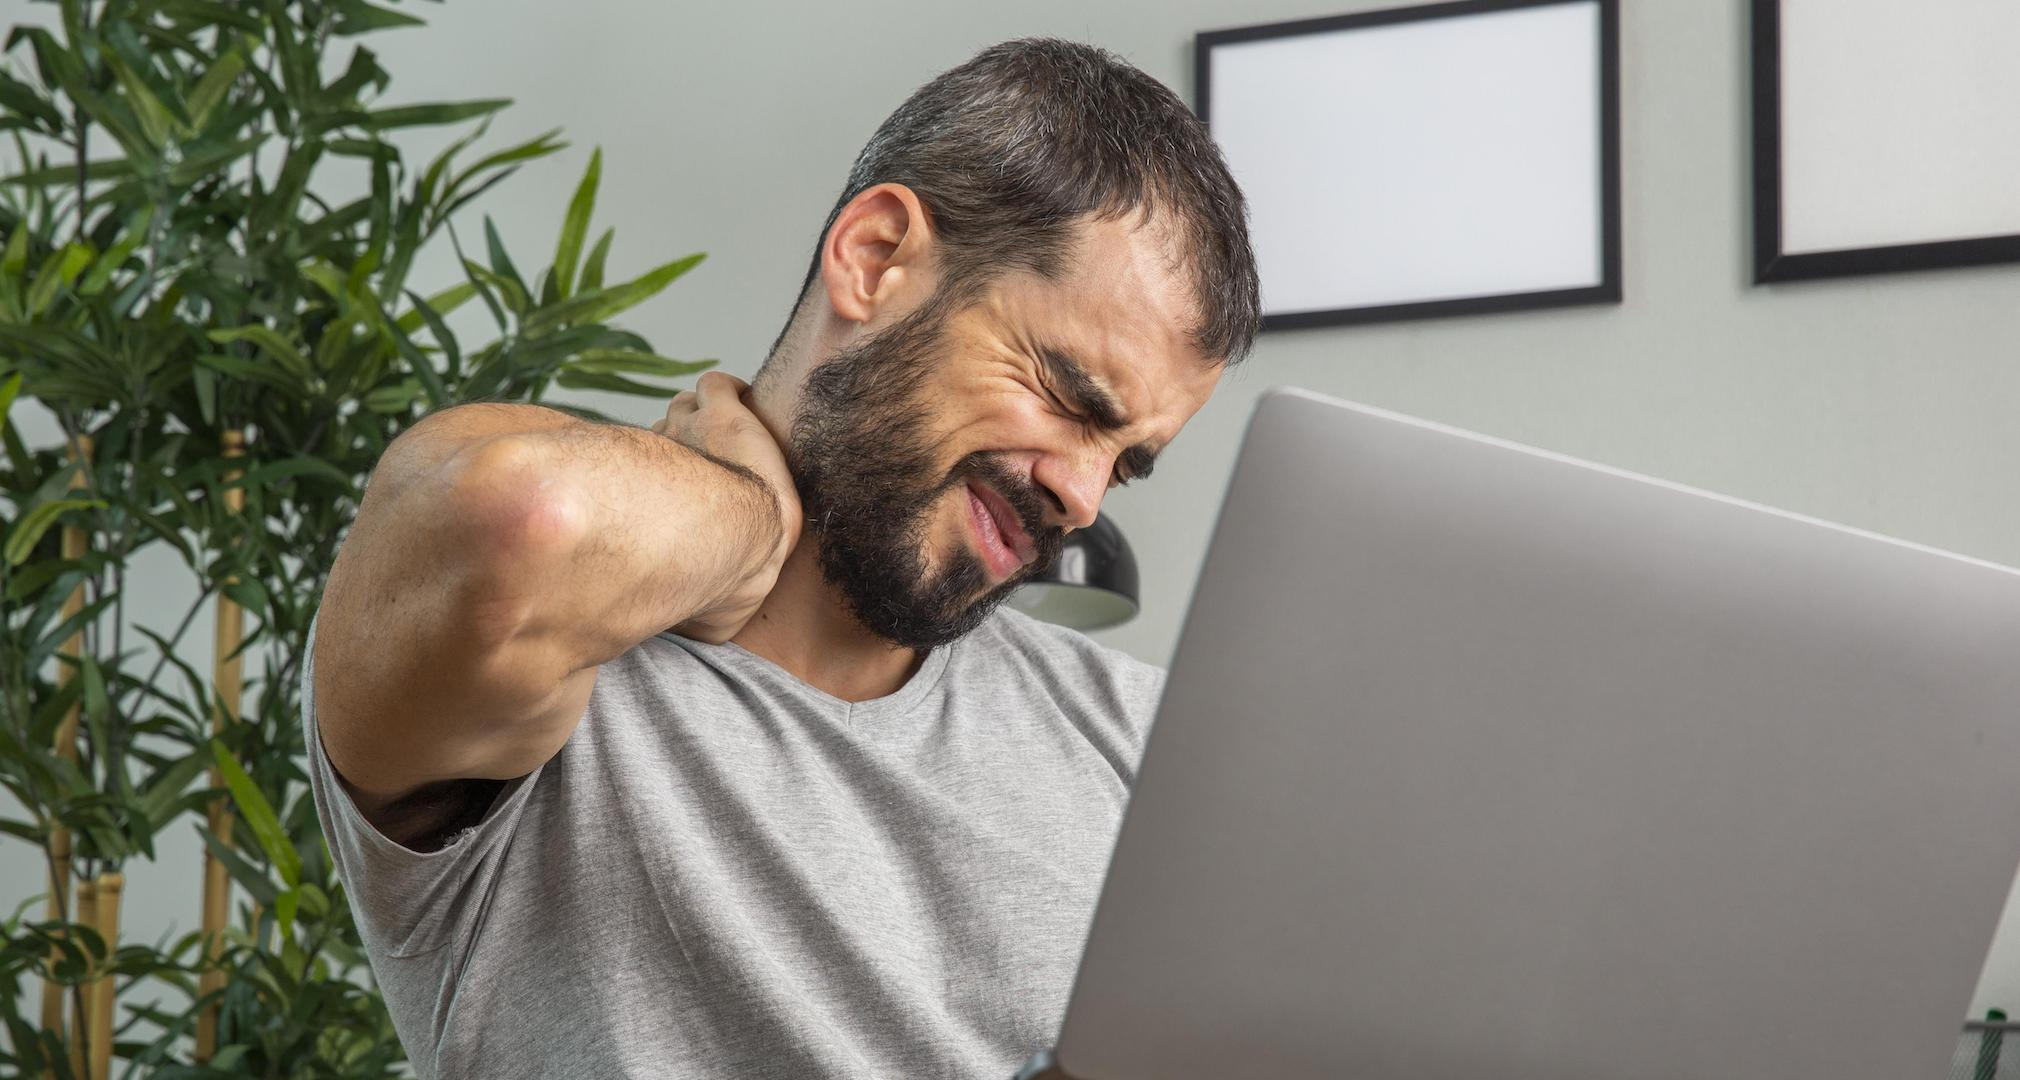 man using laptop and rubbing his neck while grimacing in pain